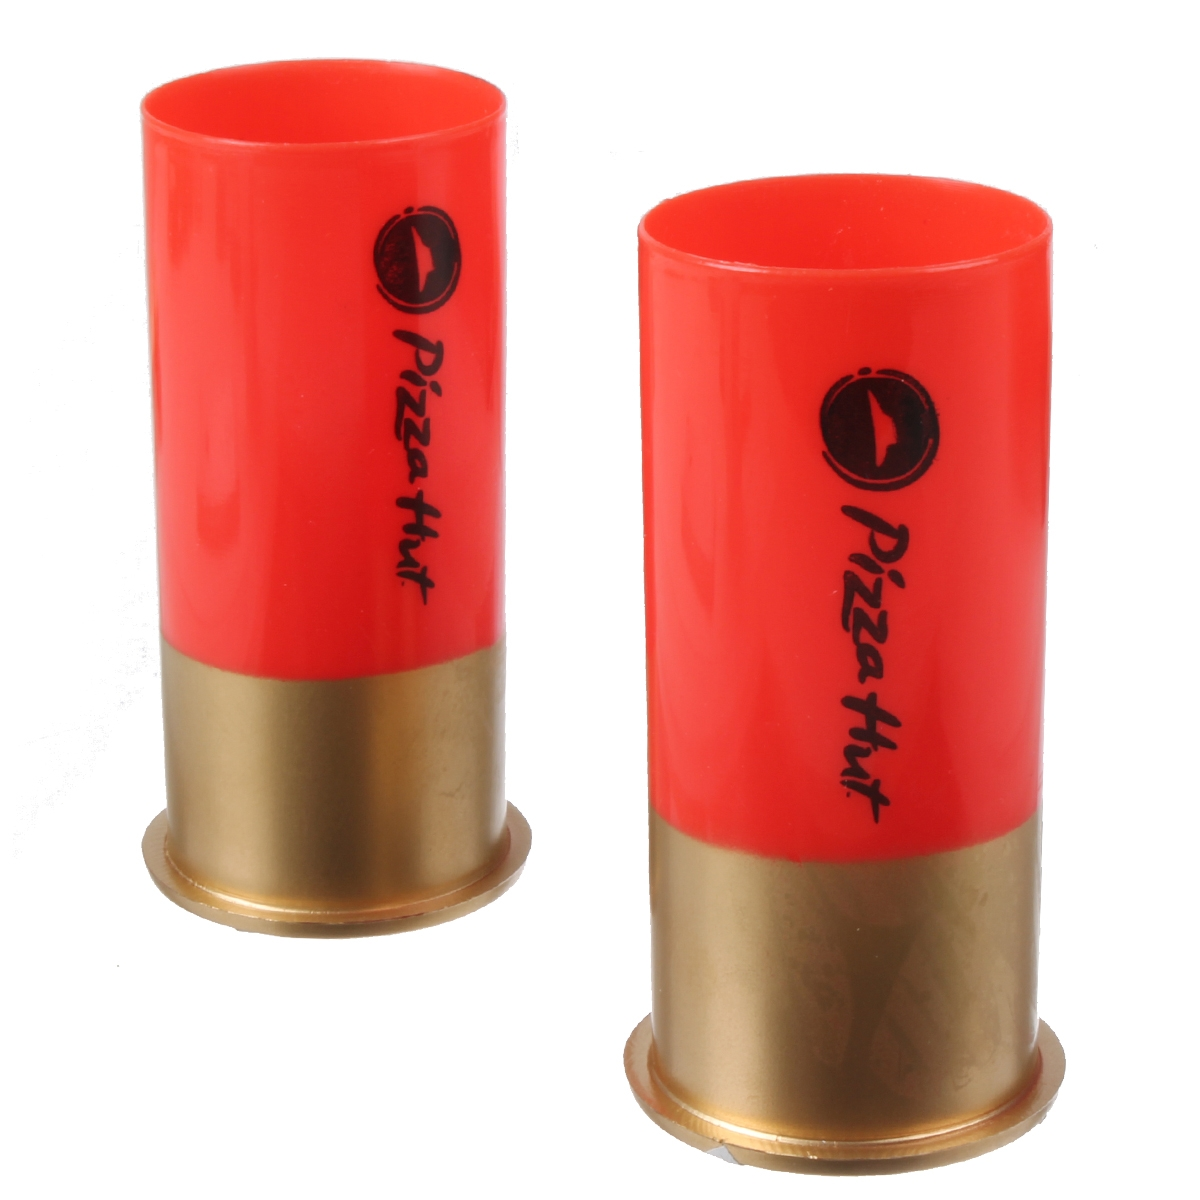 12 Gauge Shotgun Glasses